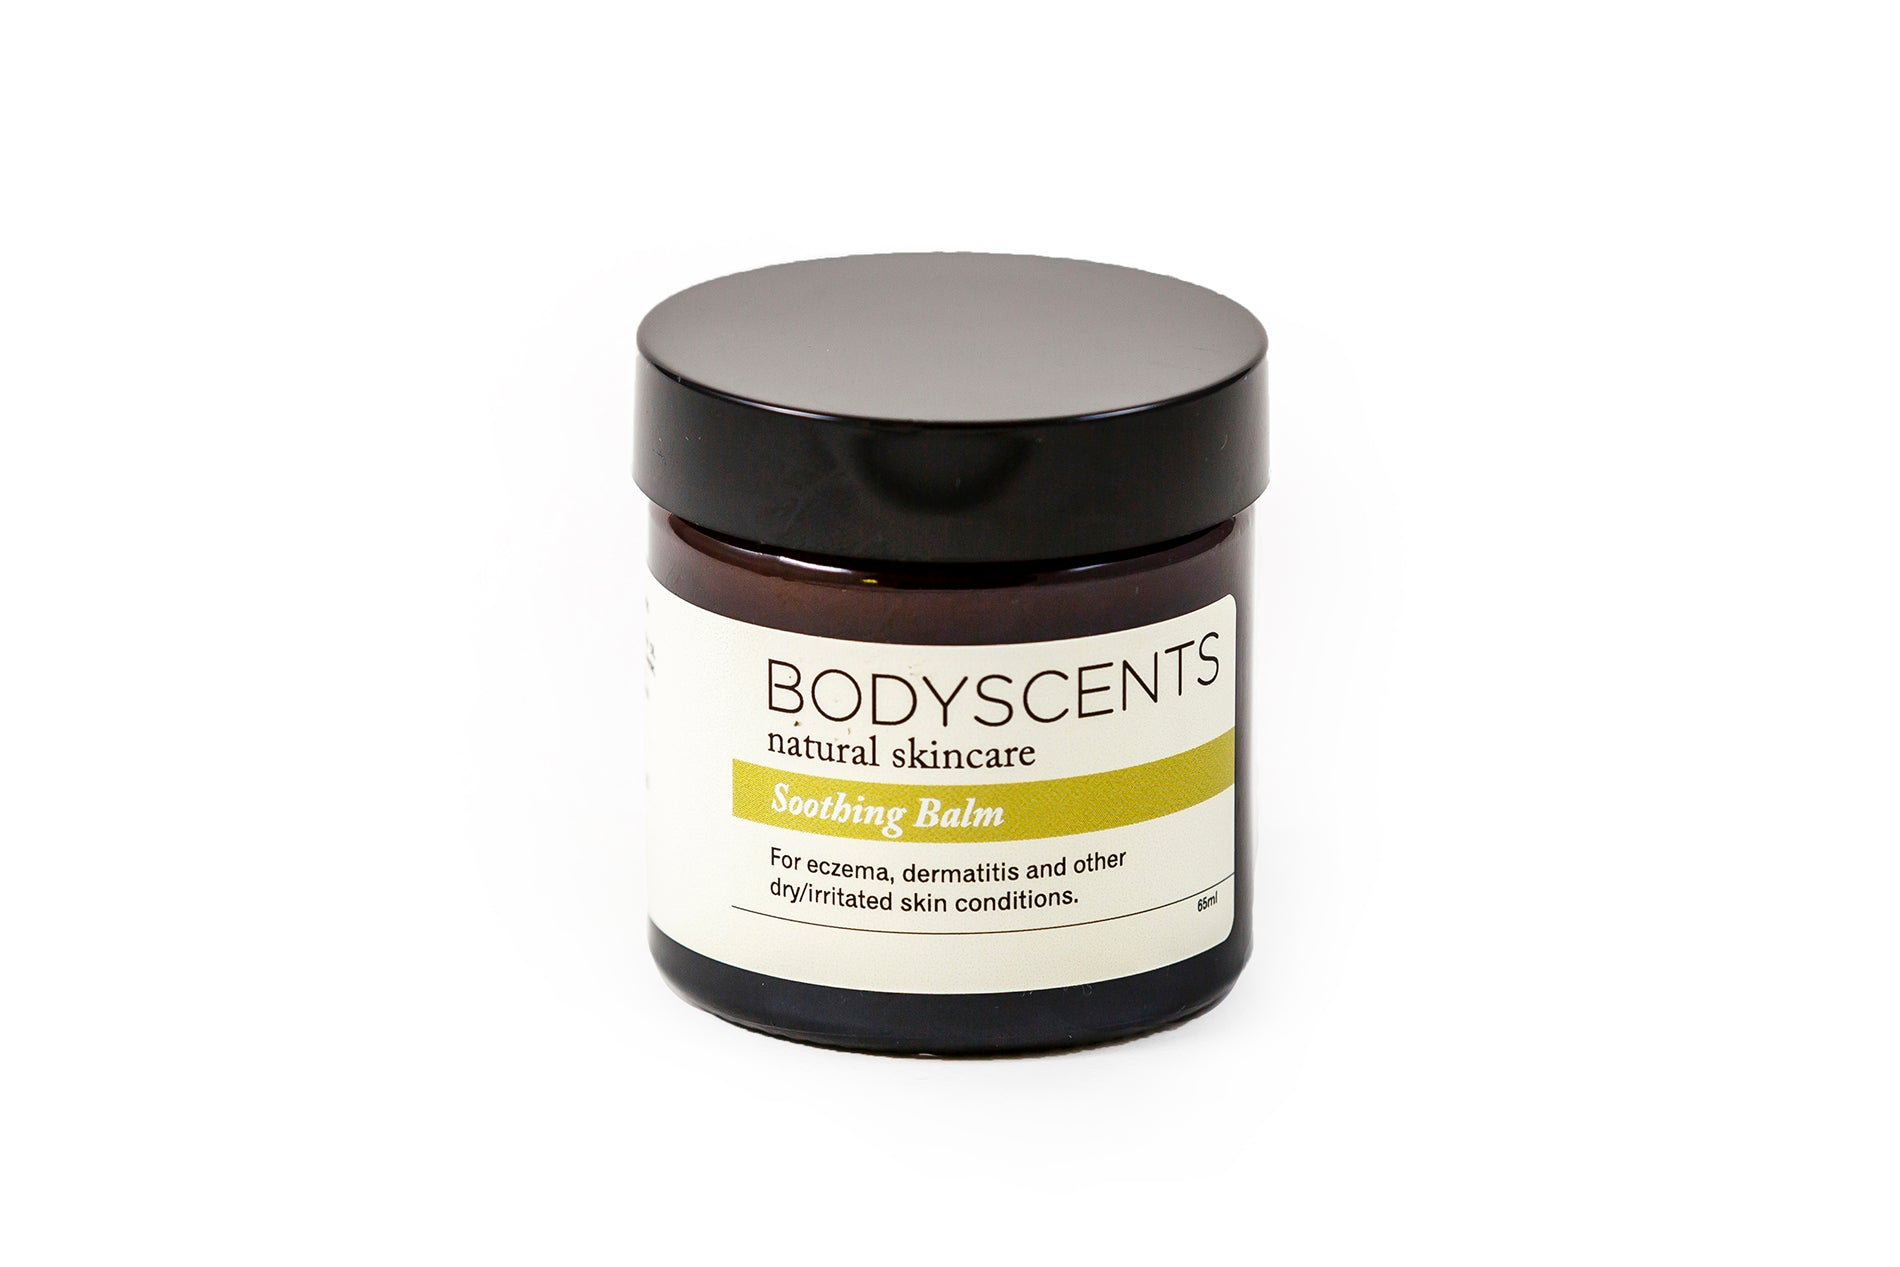 Soothing Balm - Bodyscents